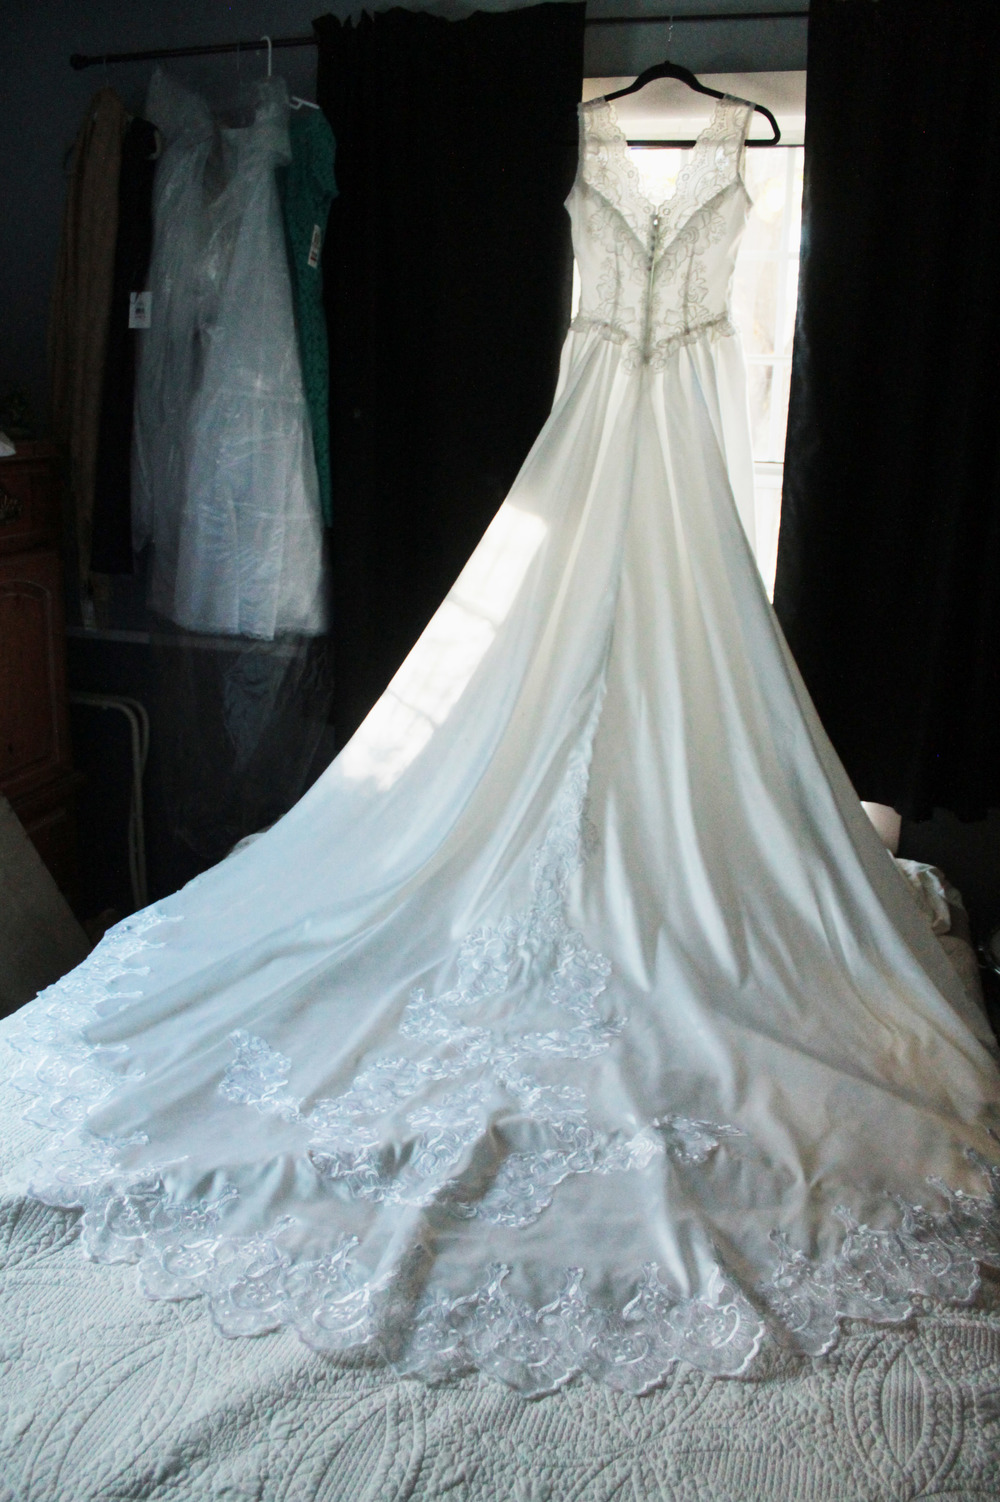 There are so many reasons why this image is awesome. First off, it was from my first wedding. Second off it was the bride's mother's dress altered and modernized and I love a dress with a story! Thirdly, it just looks stunning hanging over the bed!